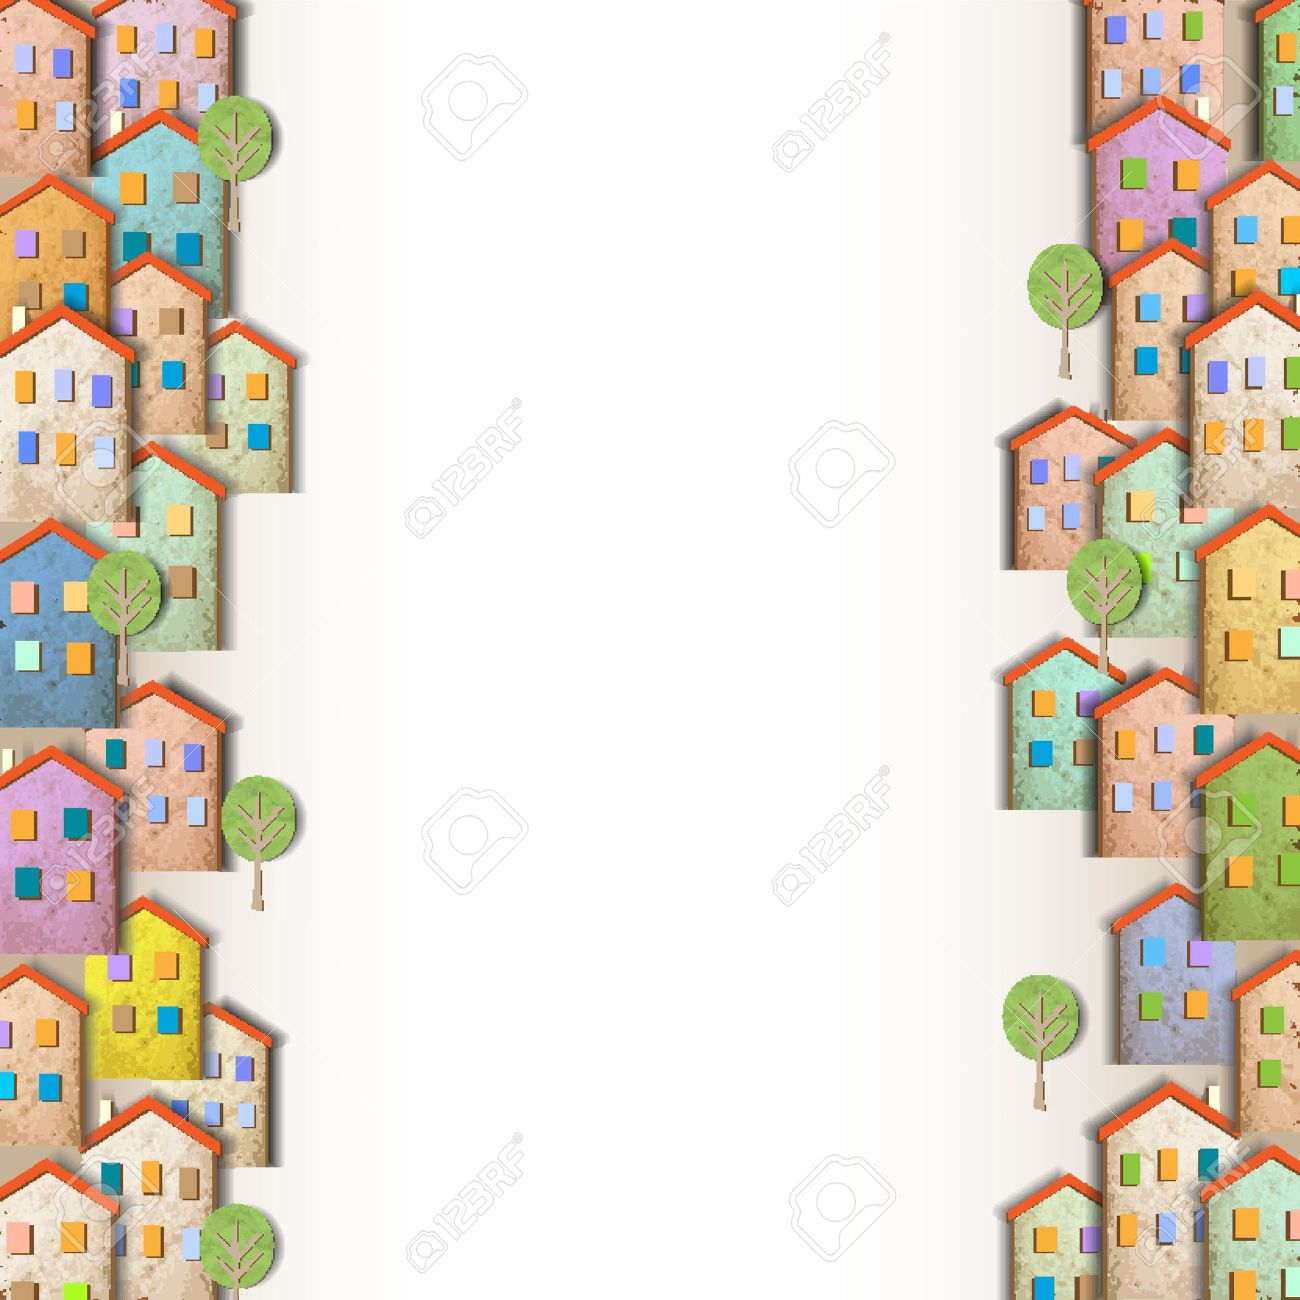 Borders Of Colorful Homes Made From Old Paper Royalty Free